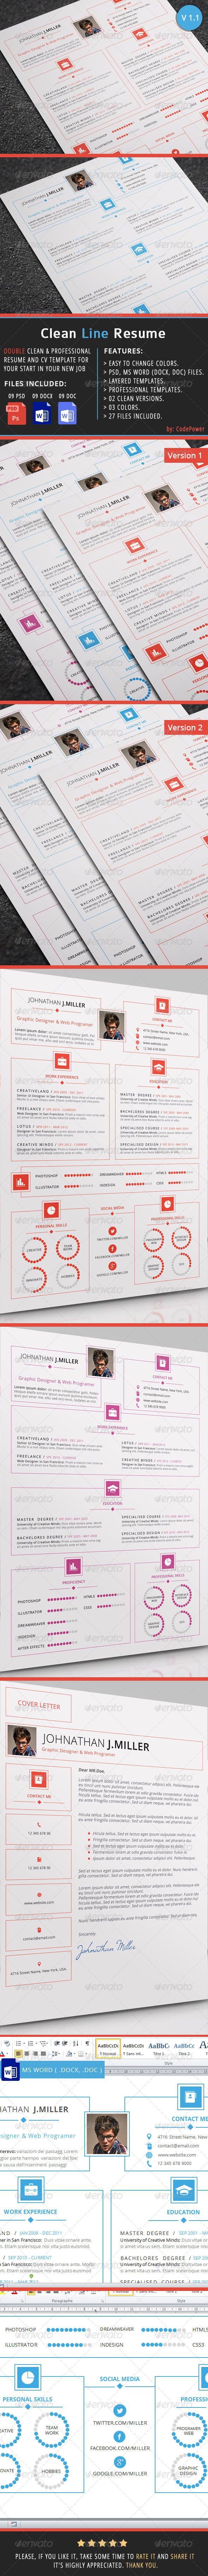 GraphicRiver Clean Line Resume 7825010